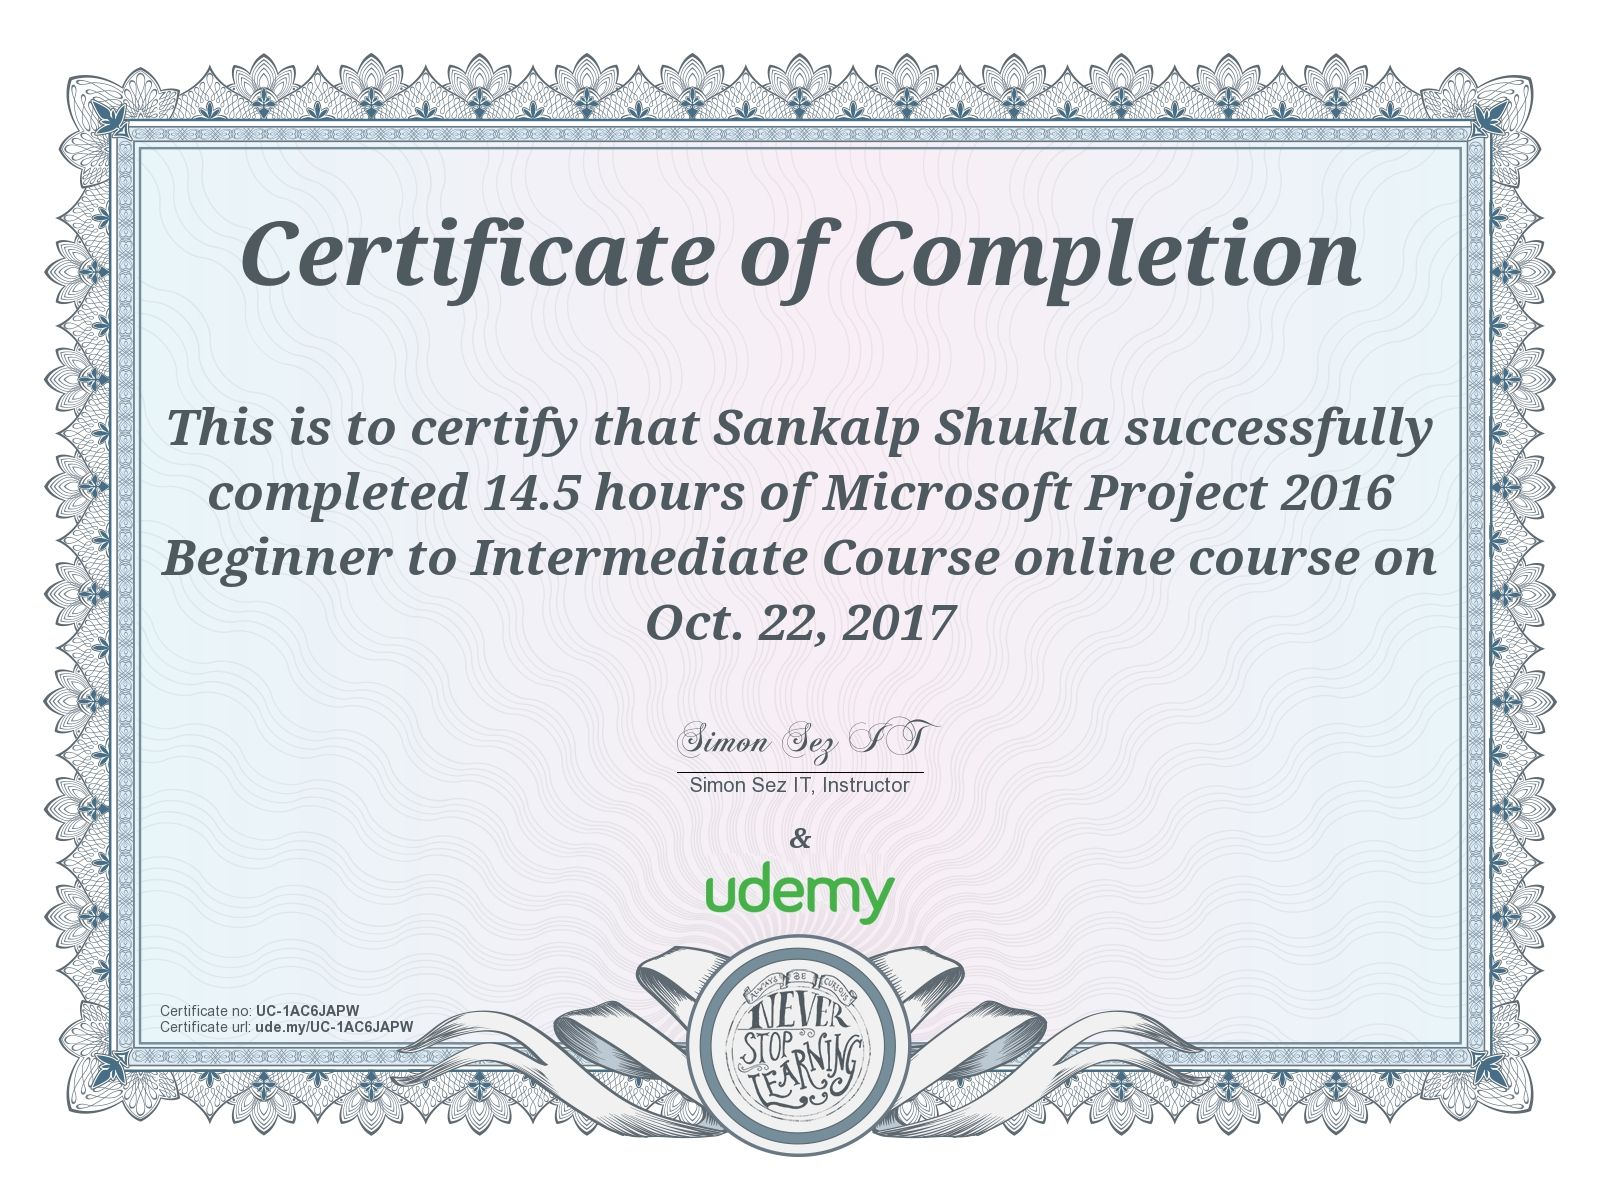 Building Completion Certificate Sample Fascinating Online Courses  Anytime Anywhere  Udemy  Sankalp  Pinterest .